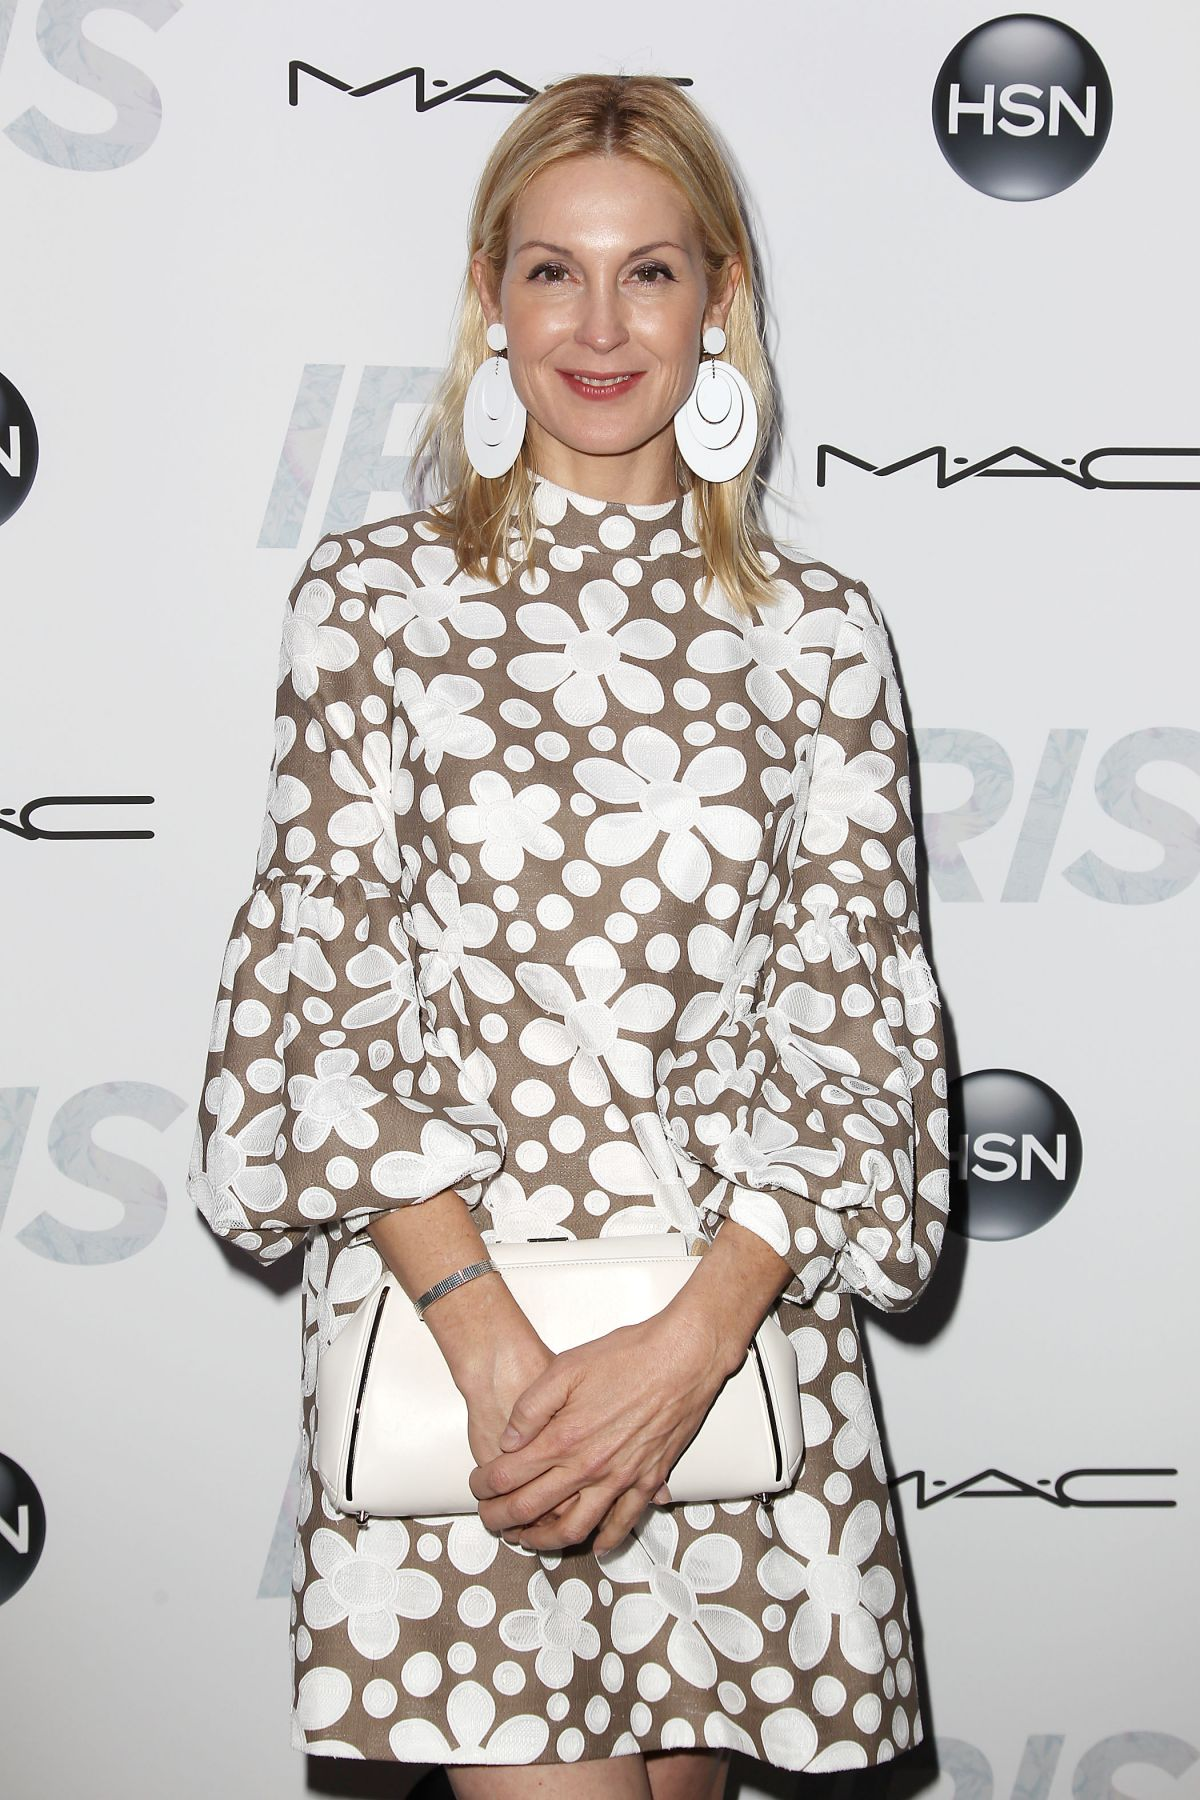 KELLY RUTHERFORD at Iris Premiere in New York